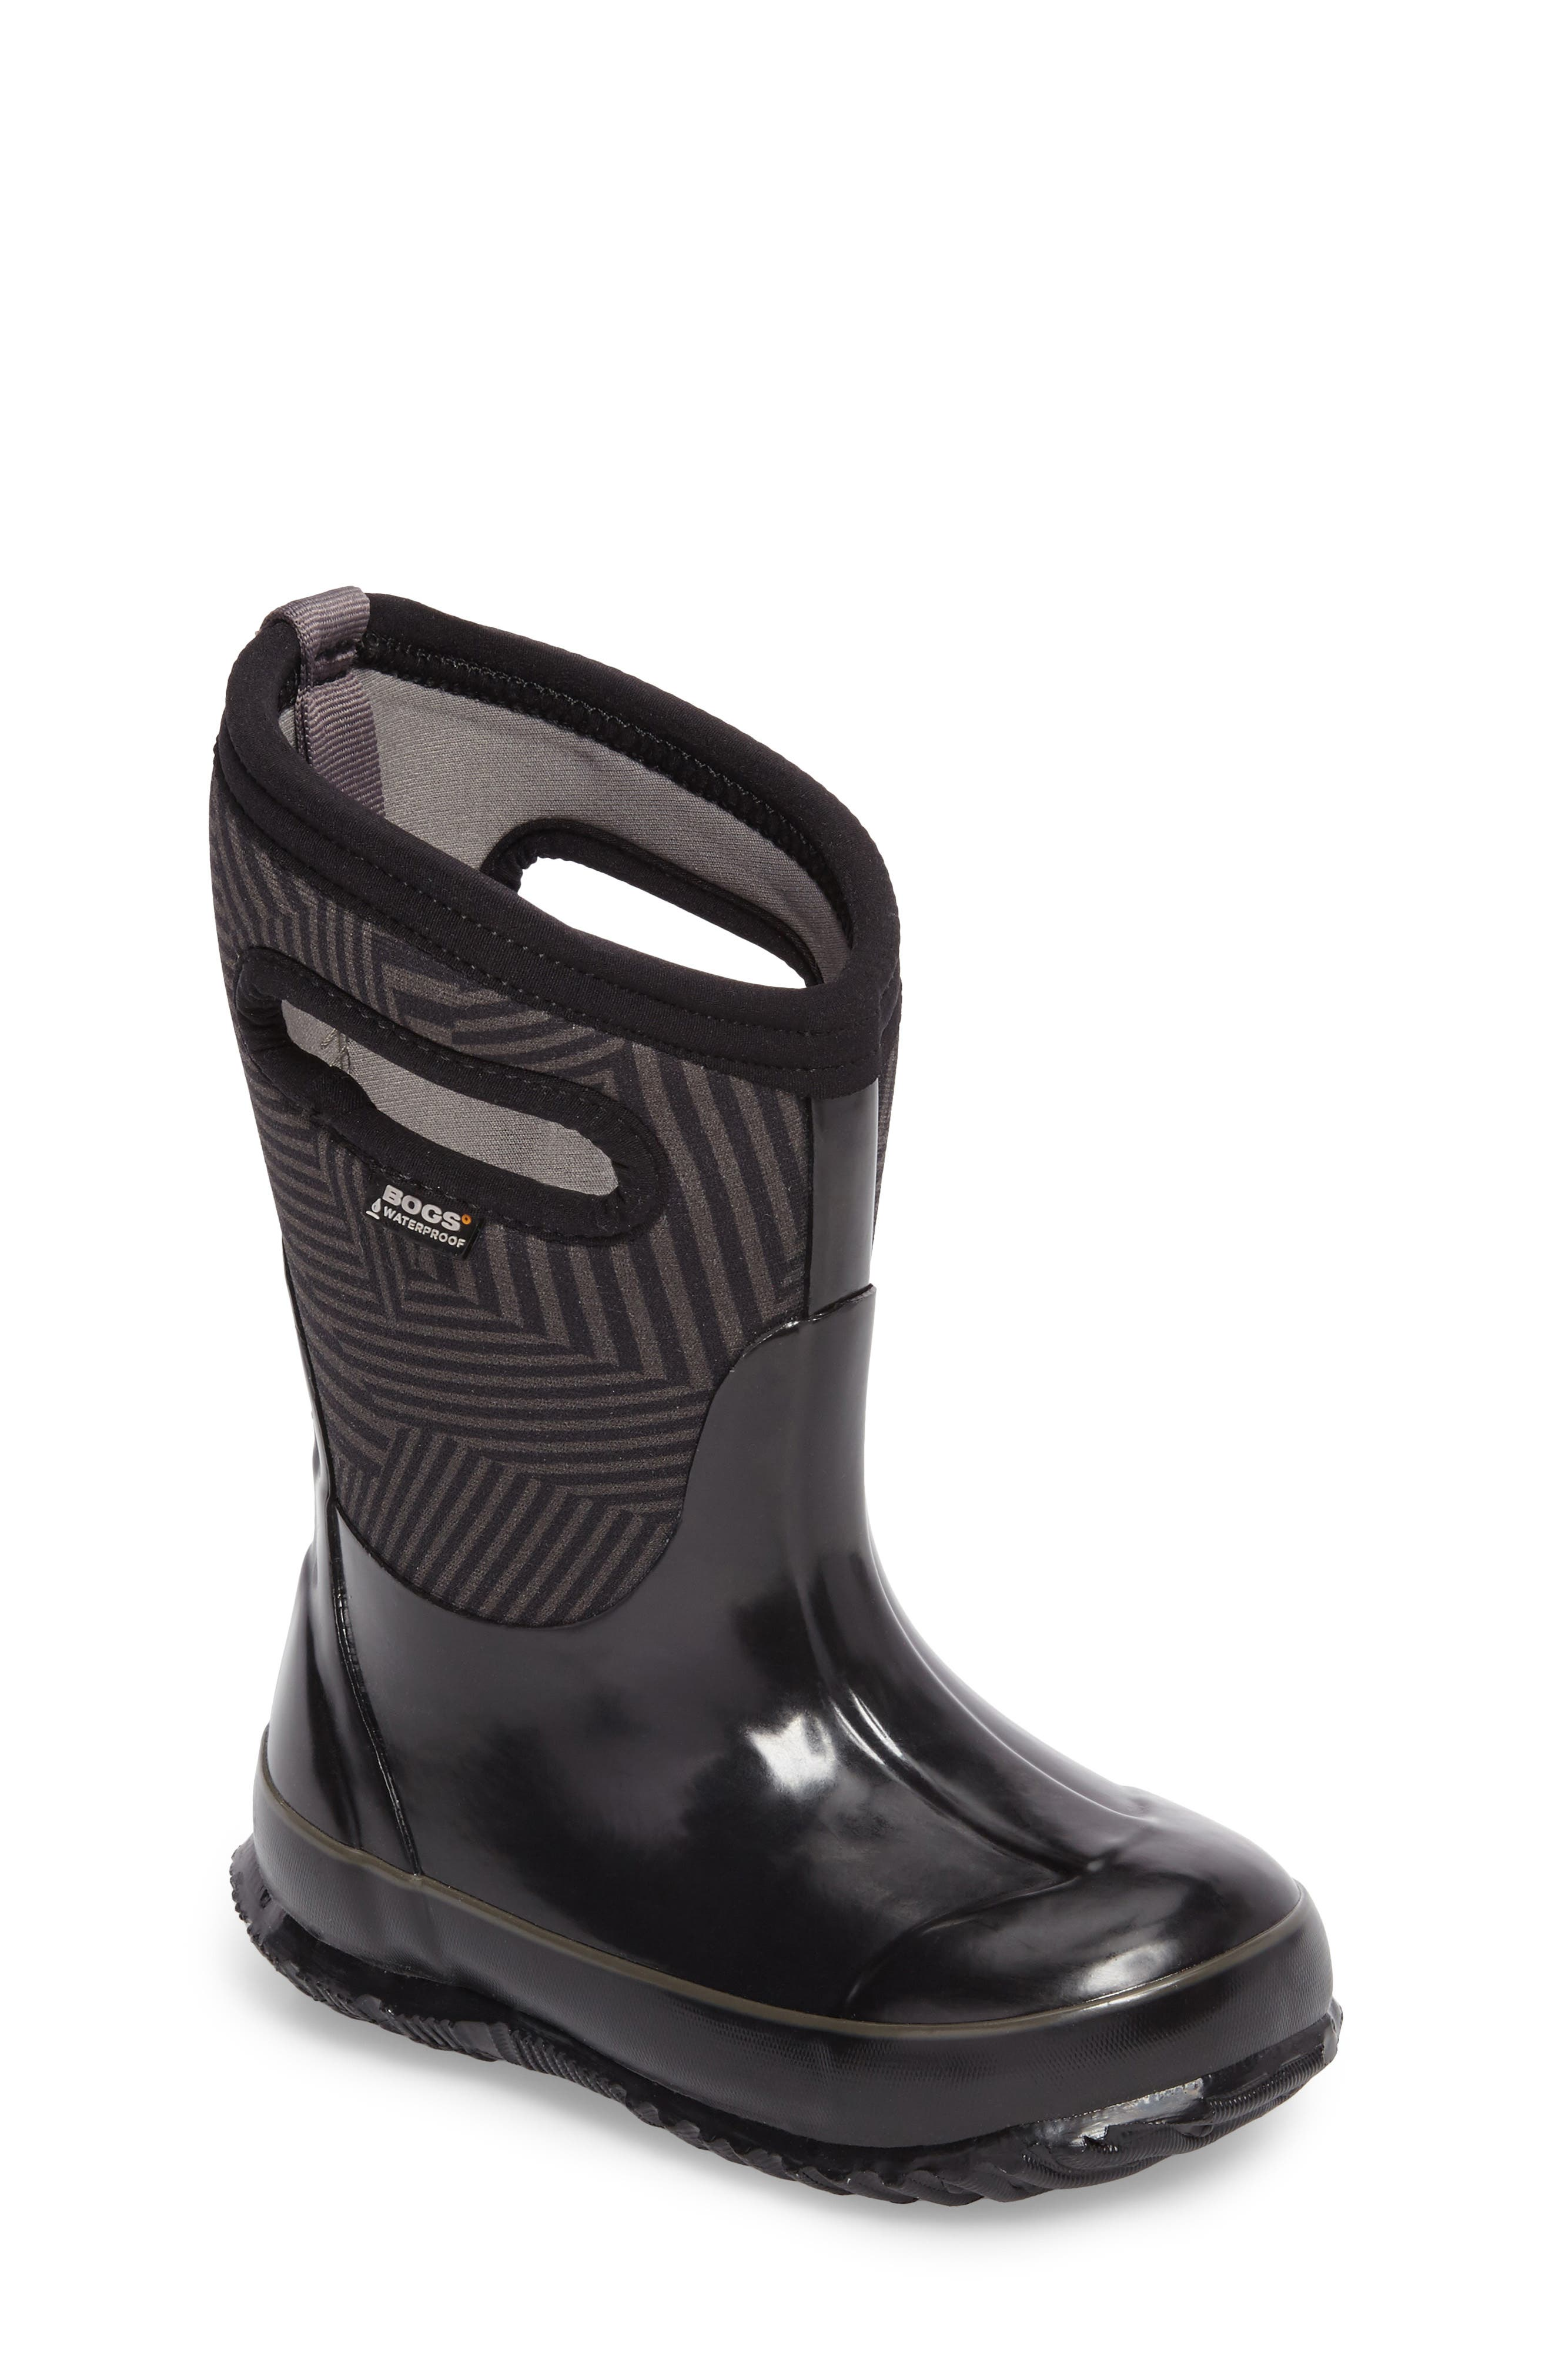 Classic Phaser Insulated Waterproof Boot,                         Main,                         color, Black Multi